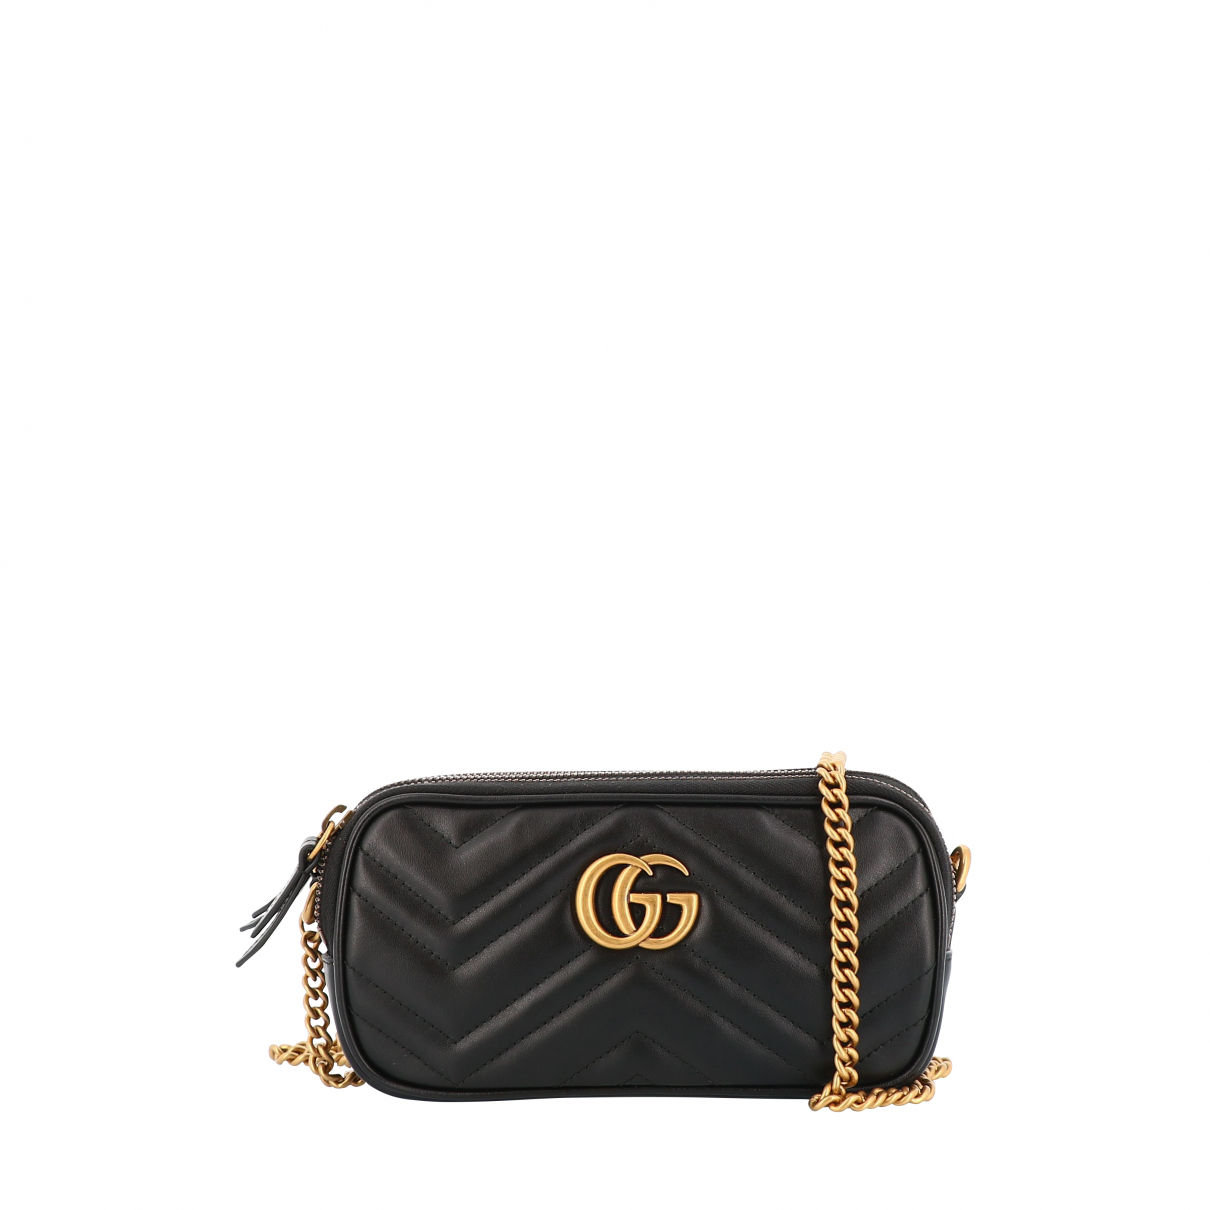 Gucci Marmont Black Pony-style calfskin handbag for Women \N